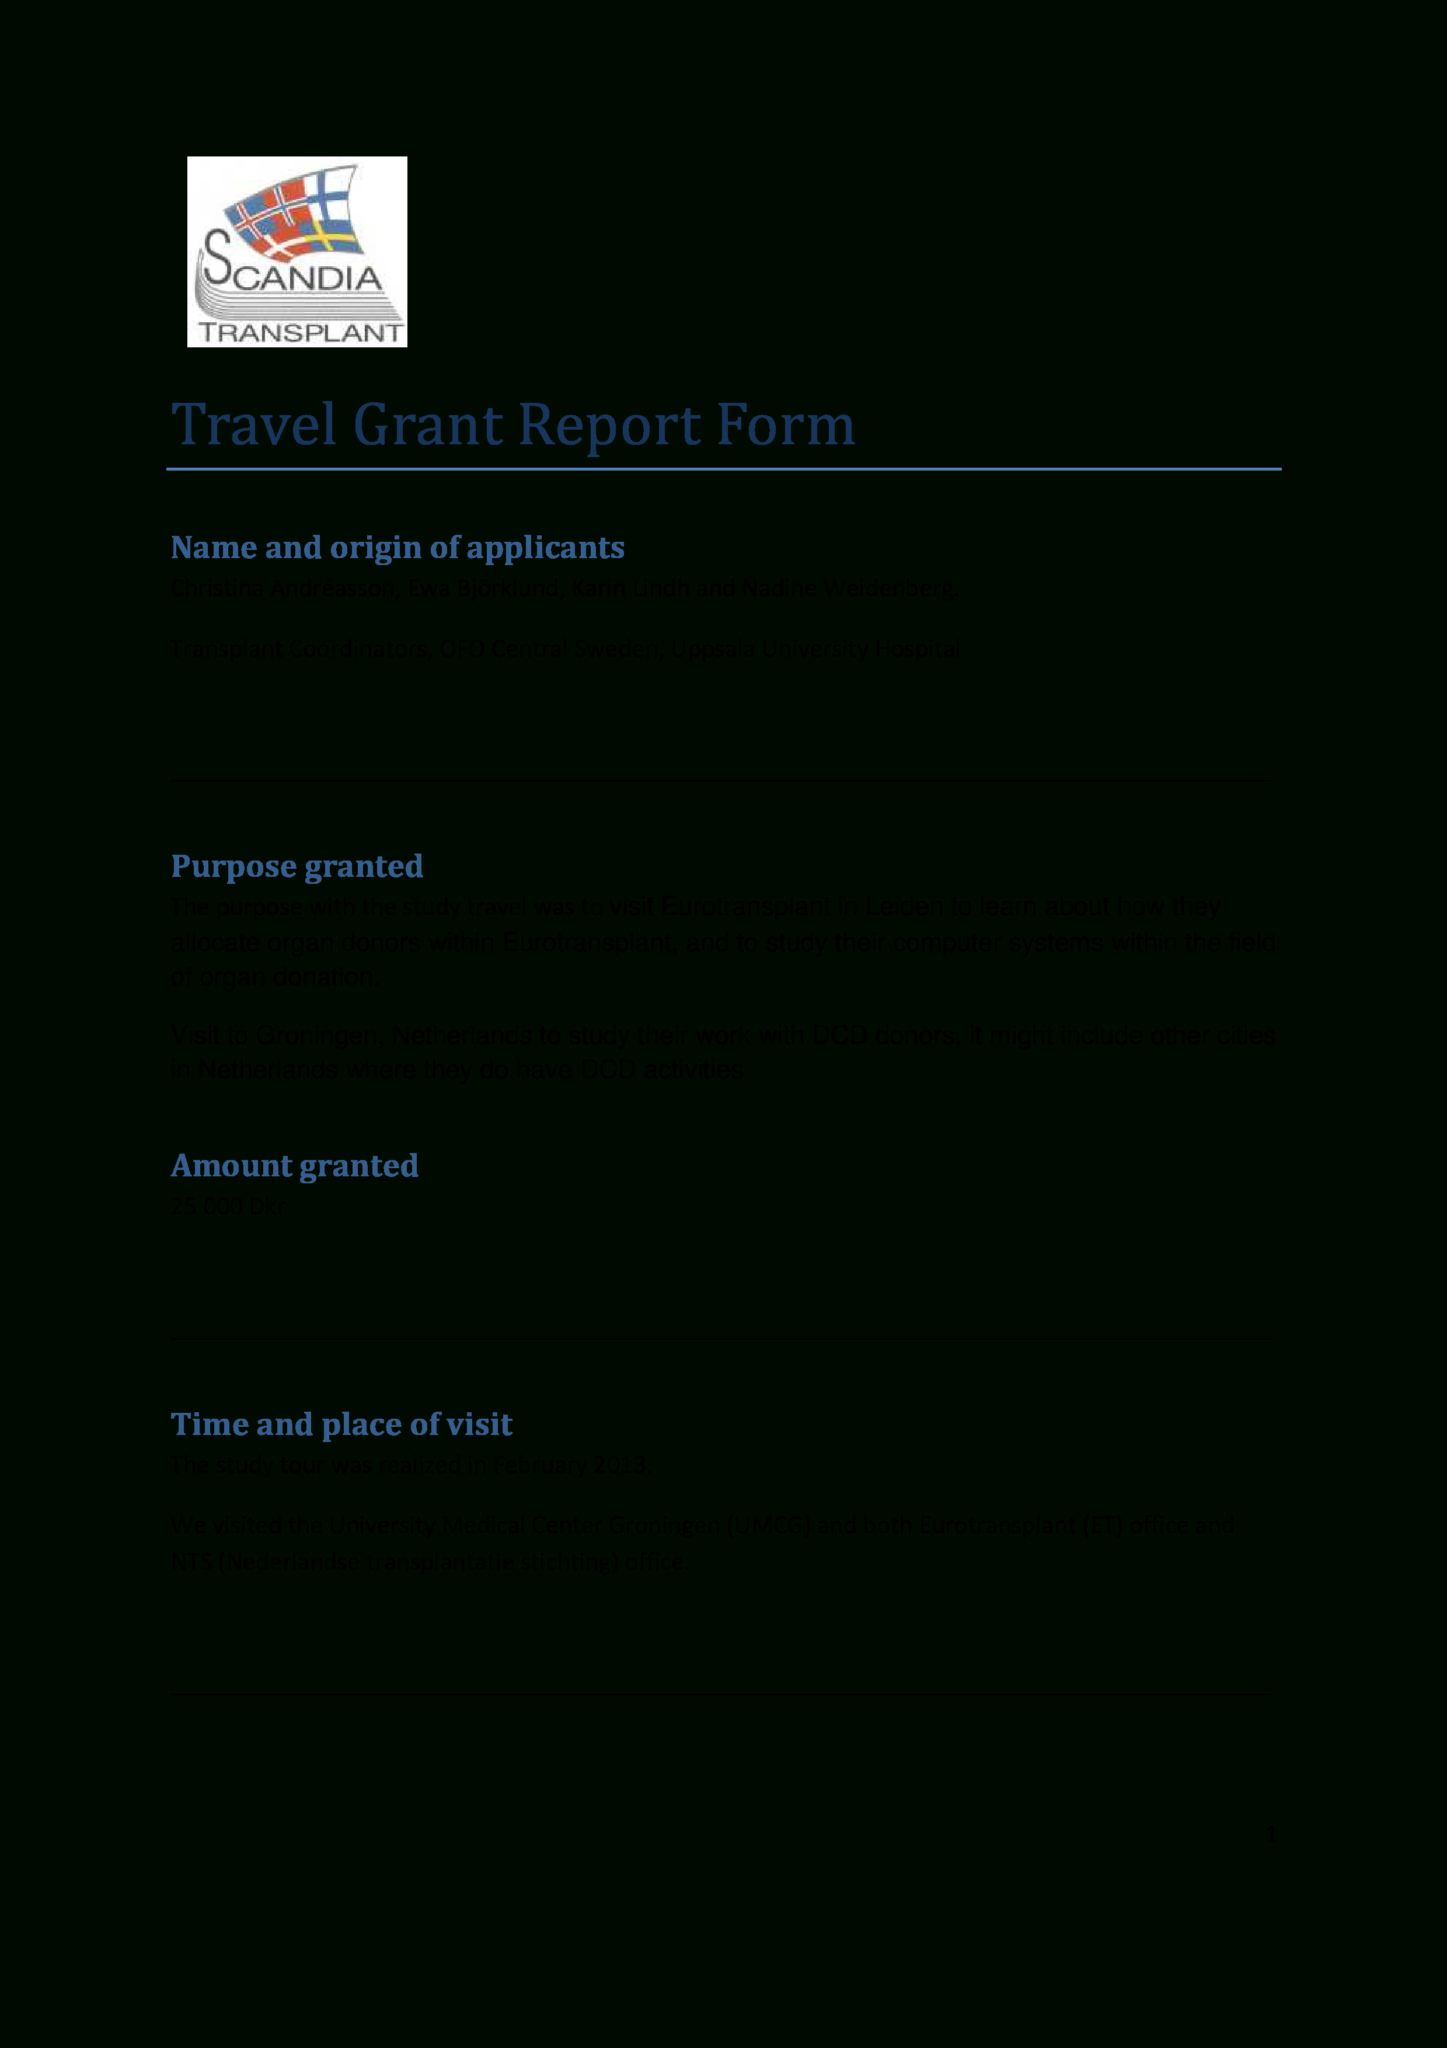 Travel Grant Templates At Allbusinesstemplates Throughout Donation Report Template Book Report Templates Business Template Professional Templates